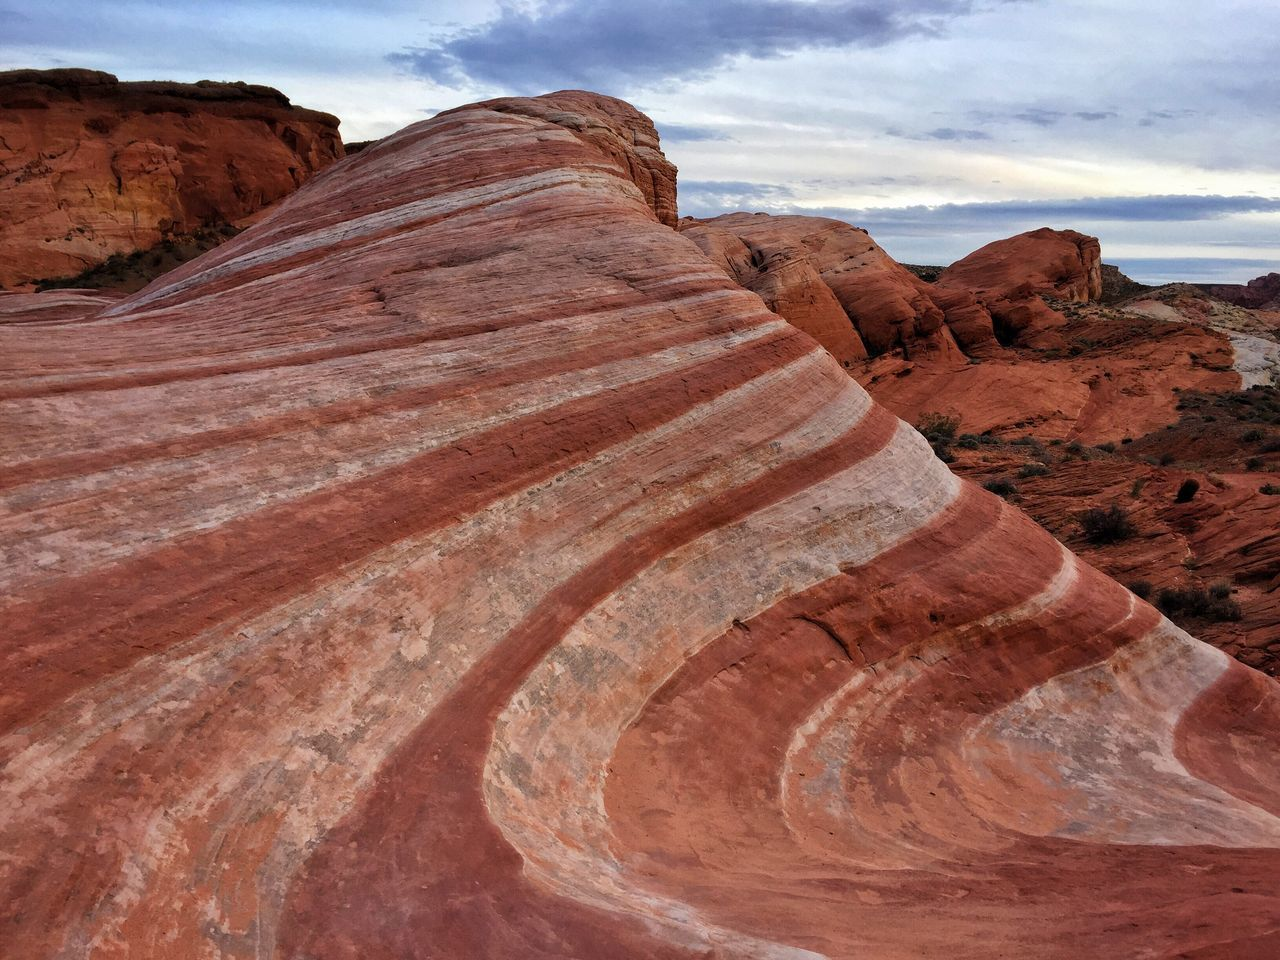 """Fire Wave"" Nature Sky Rock - Object Landscape Geology Rock Formation Outdoors Travel Physical Geography Tranquility Travel Destinations Desert Day Tourism Tranquil Scene Scenics Arid Climate No People Beauty In Nature Colorful Rock Formation Striped"